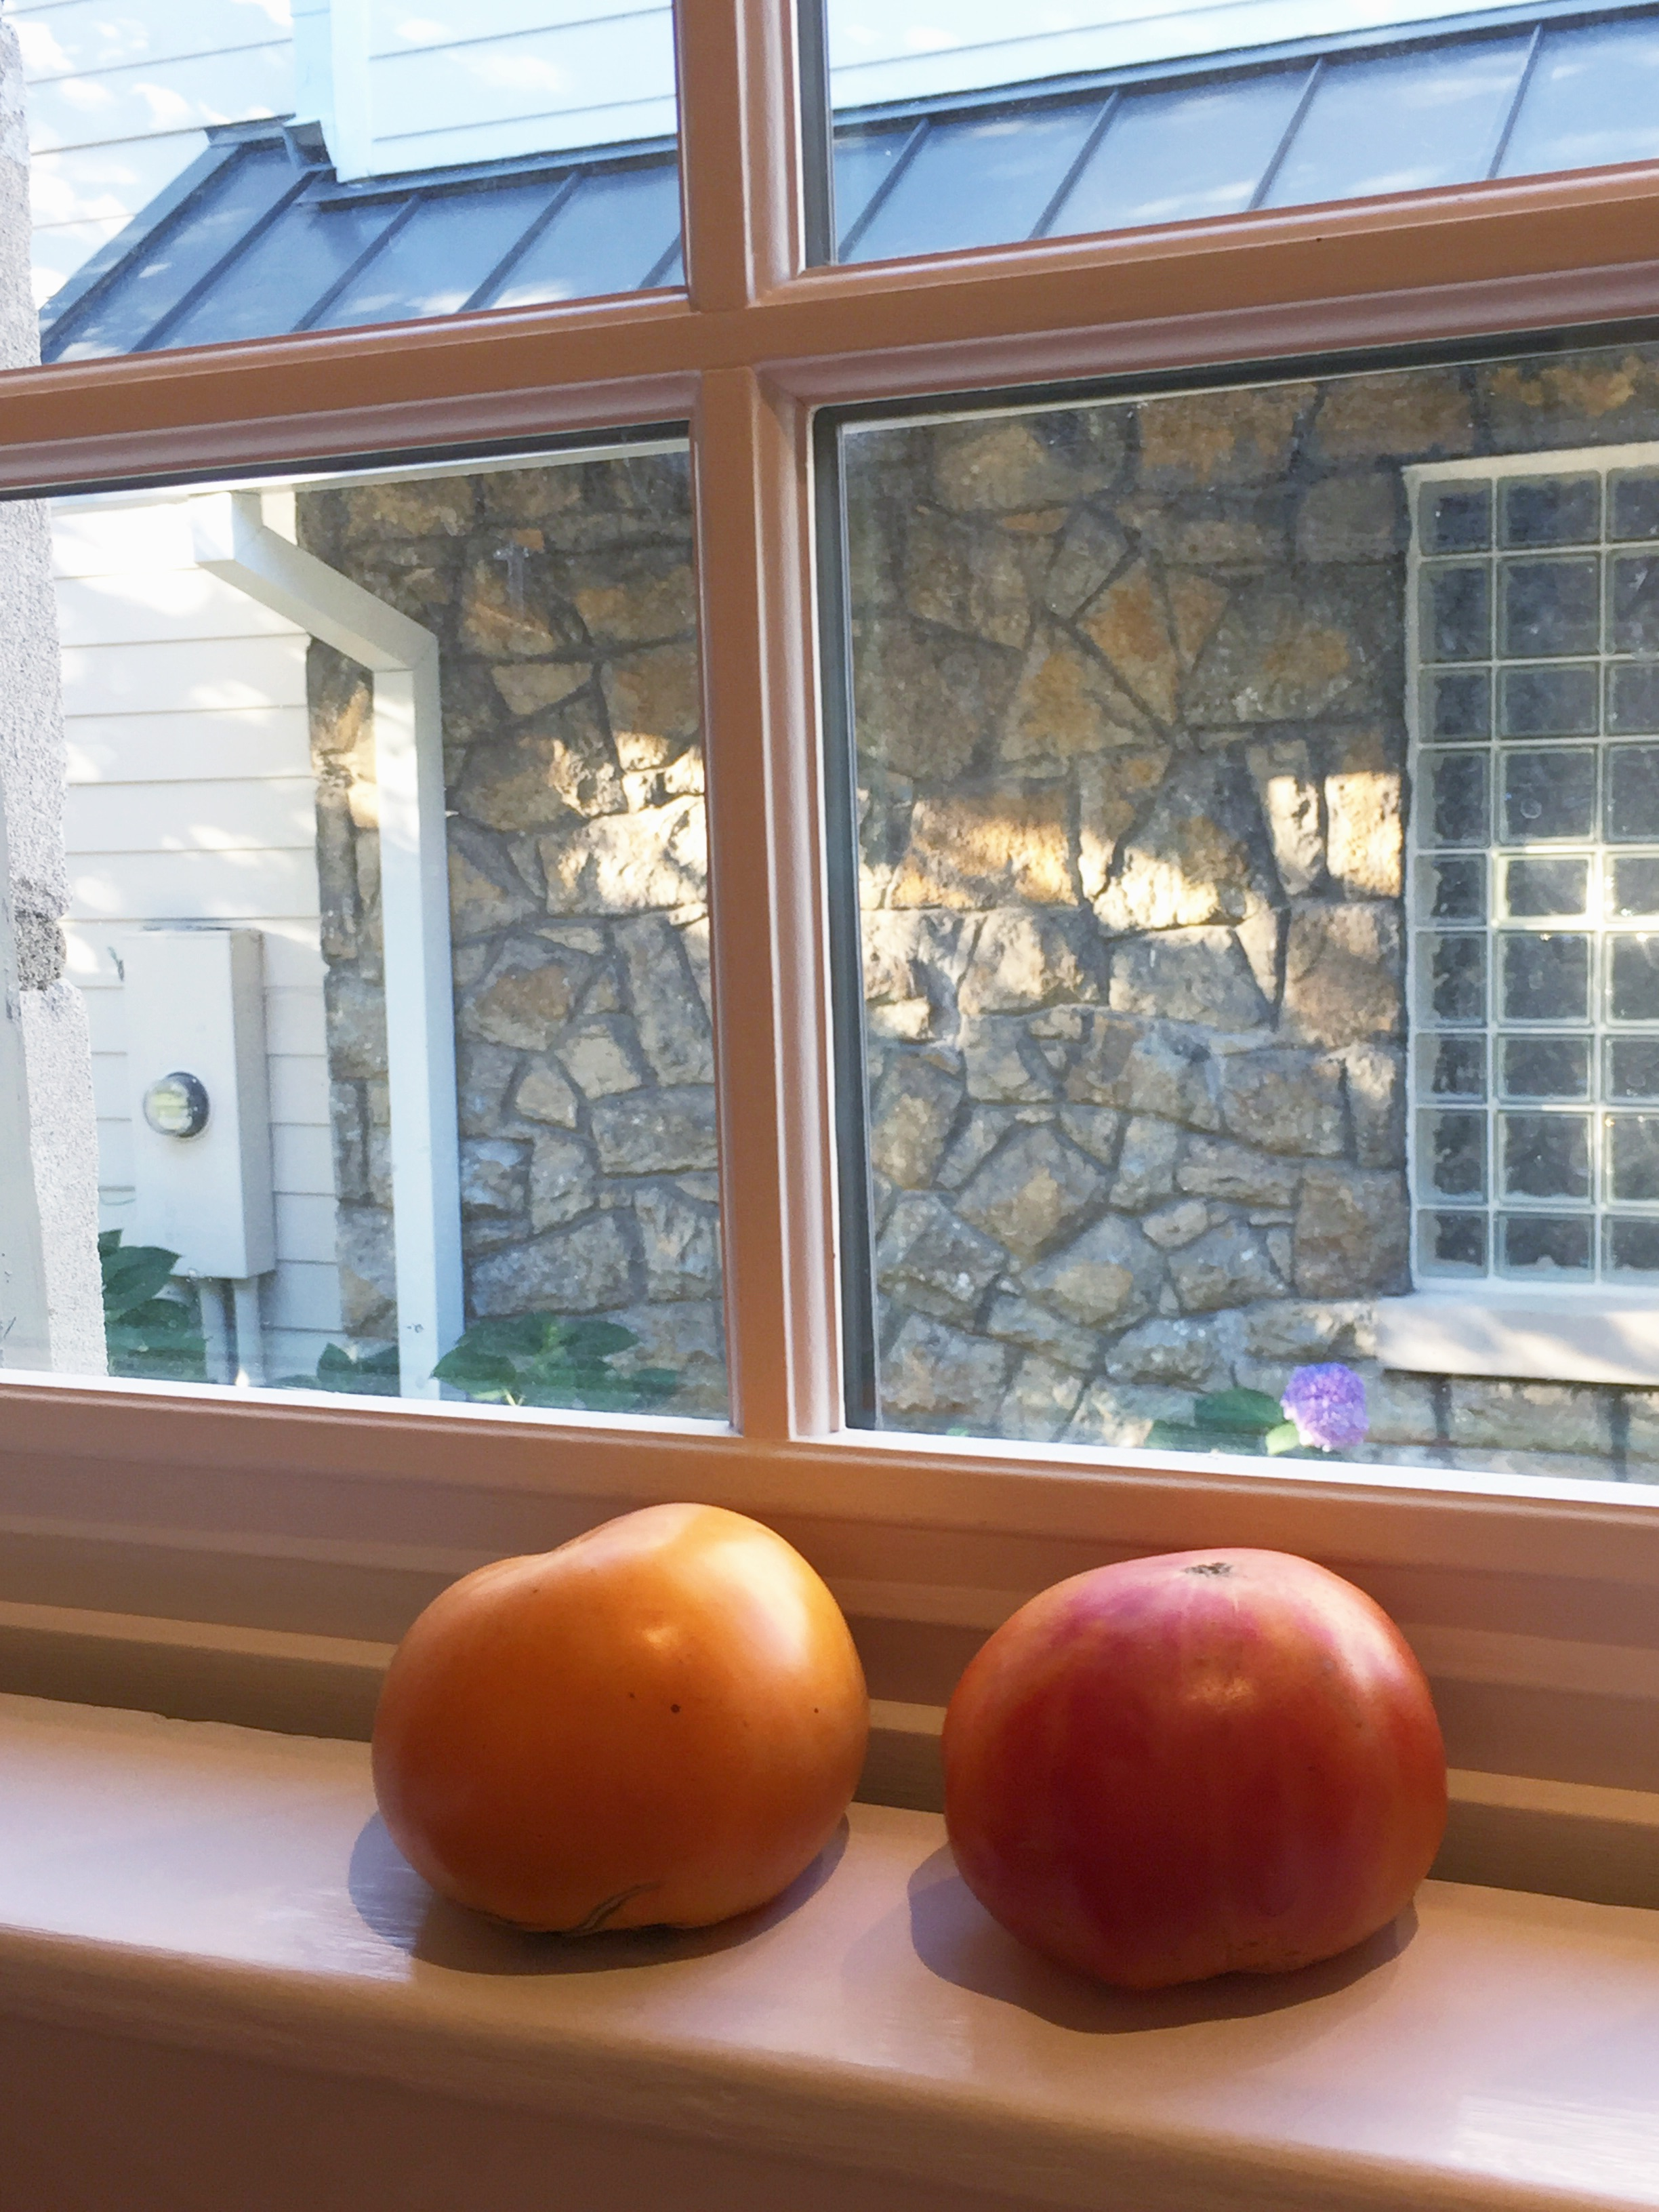 Do you store your tomatoes in the windowsill? They should really be kept out of direct sunlight, but I have a bad habit of putting them there to keep them from getting squished by other produce. Another tip - keep them stem-side down to allow them to conintue to ripen.